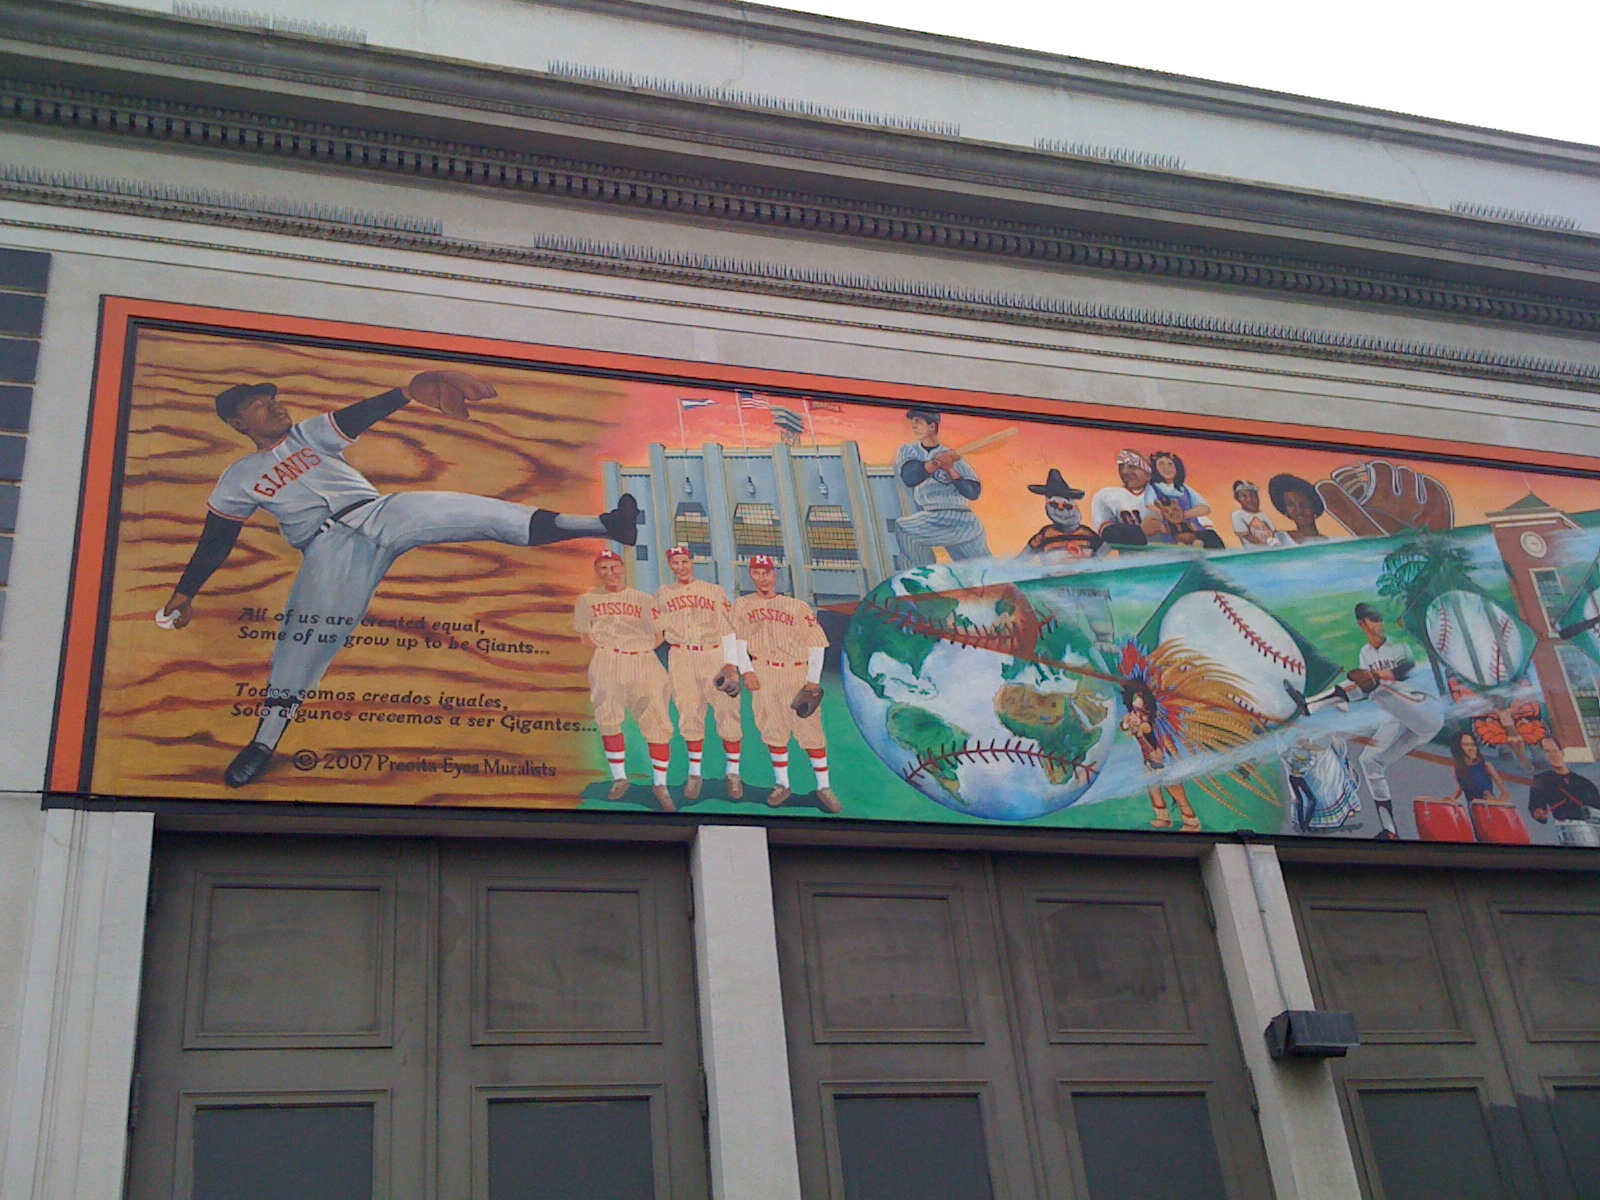 honoring the history of bay area baseball ninety feet of i personally like the mural because on the left side they included seals stadium joe dimaggio in a seals uniform and 3 players in mission reds uniforms